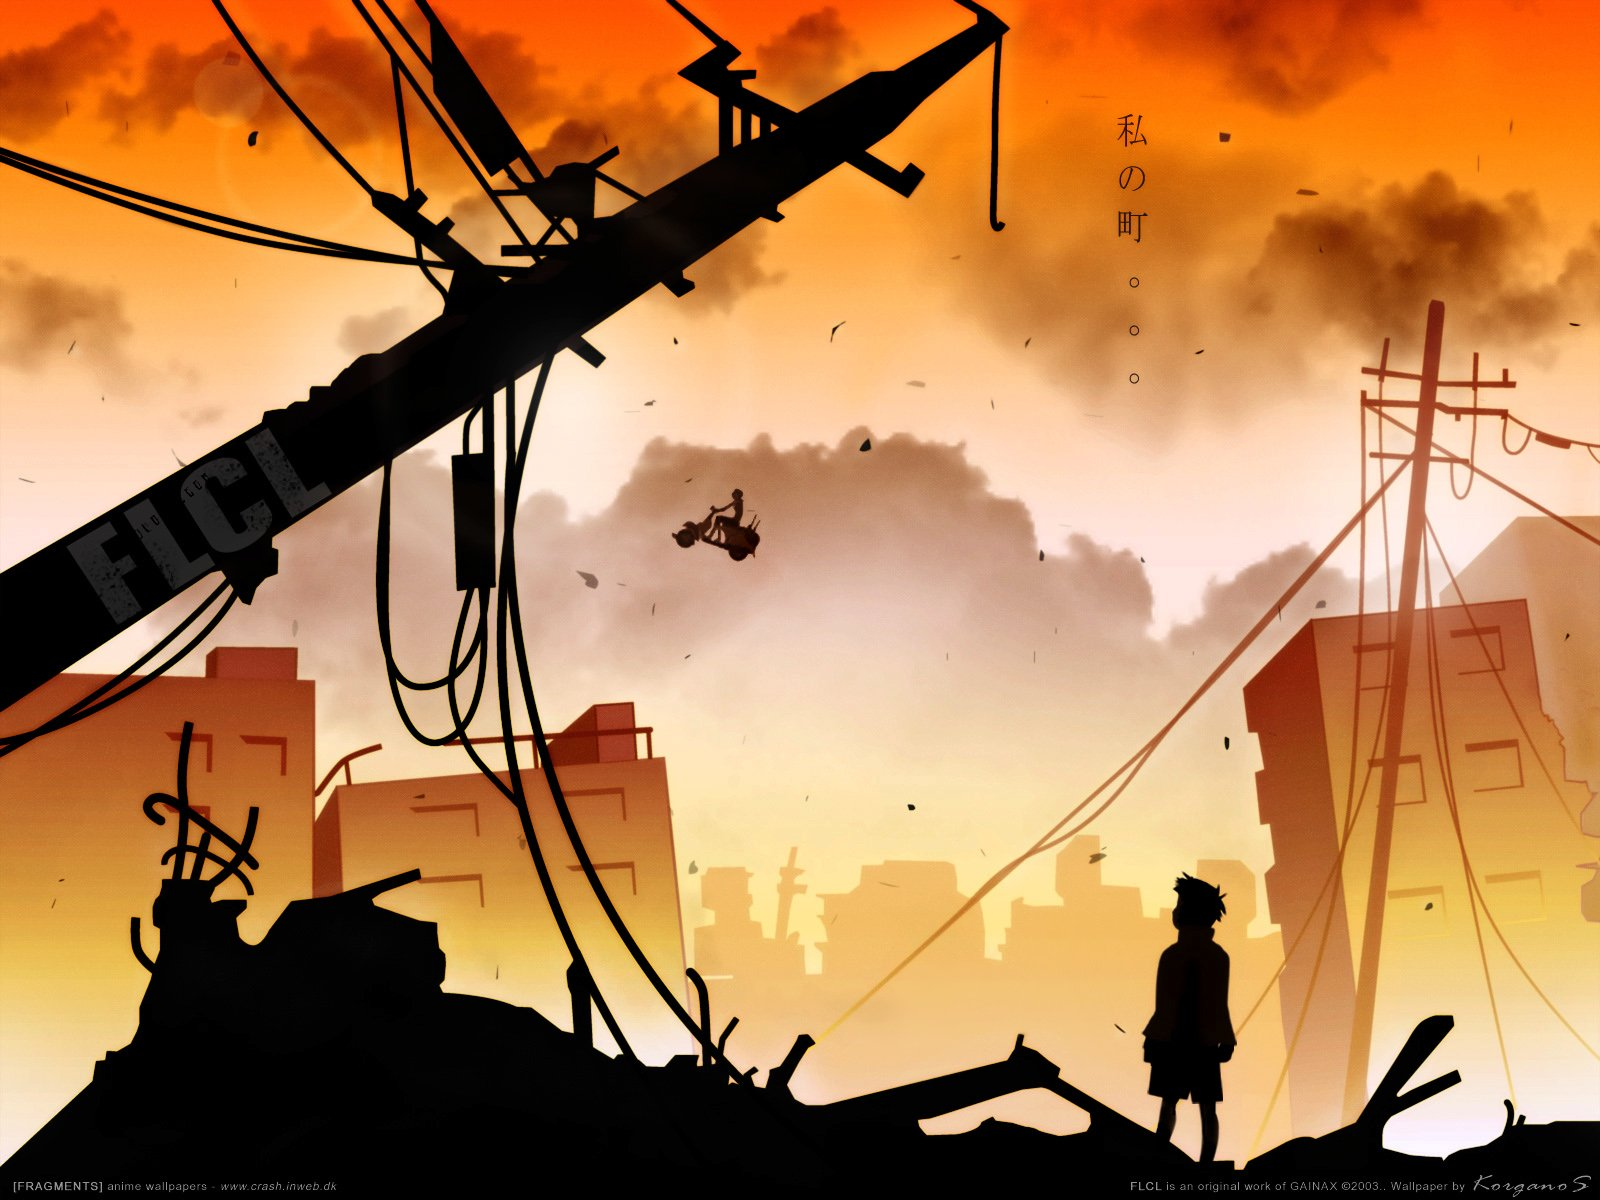 Flcl wallpaper and background image 1600x1200 id 10950 - Flcl wallpaper ...